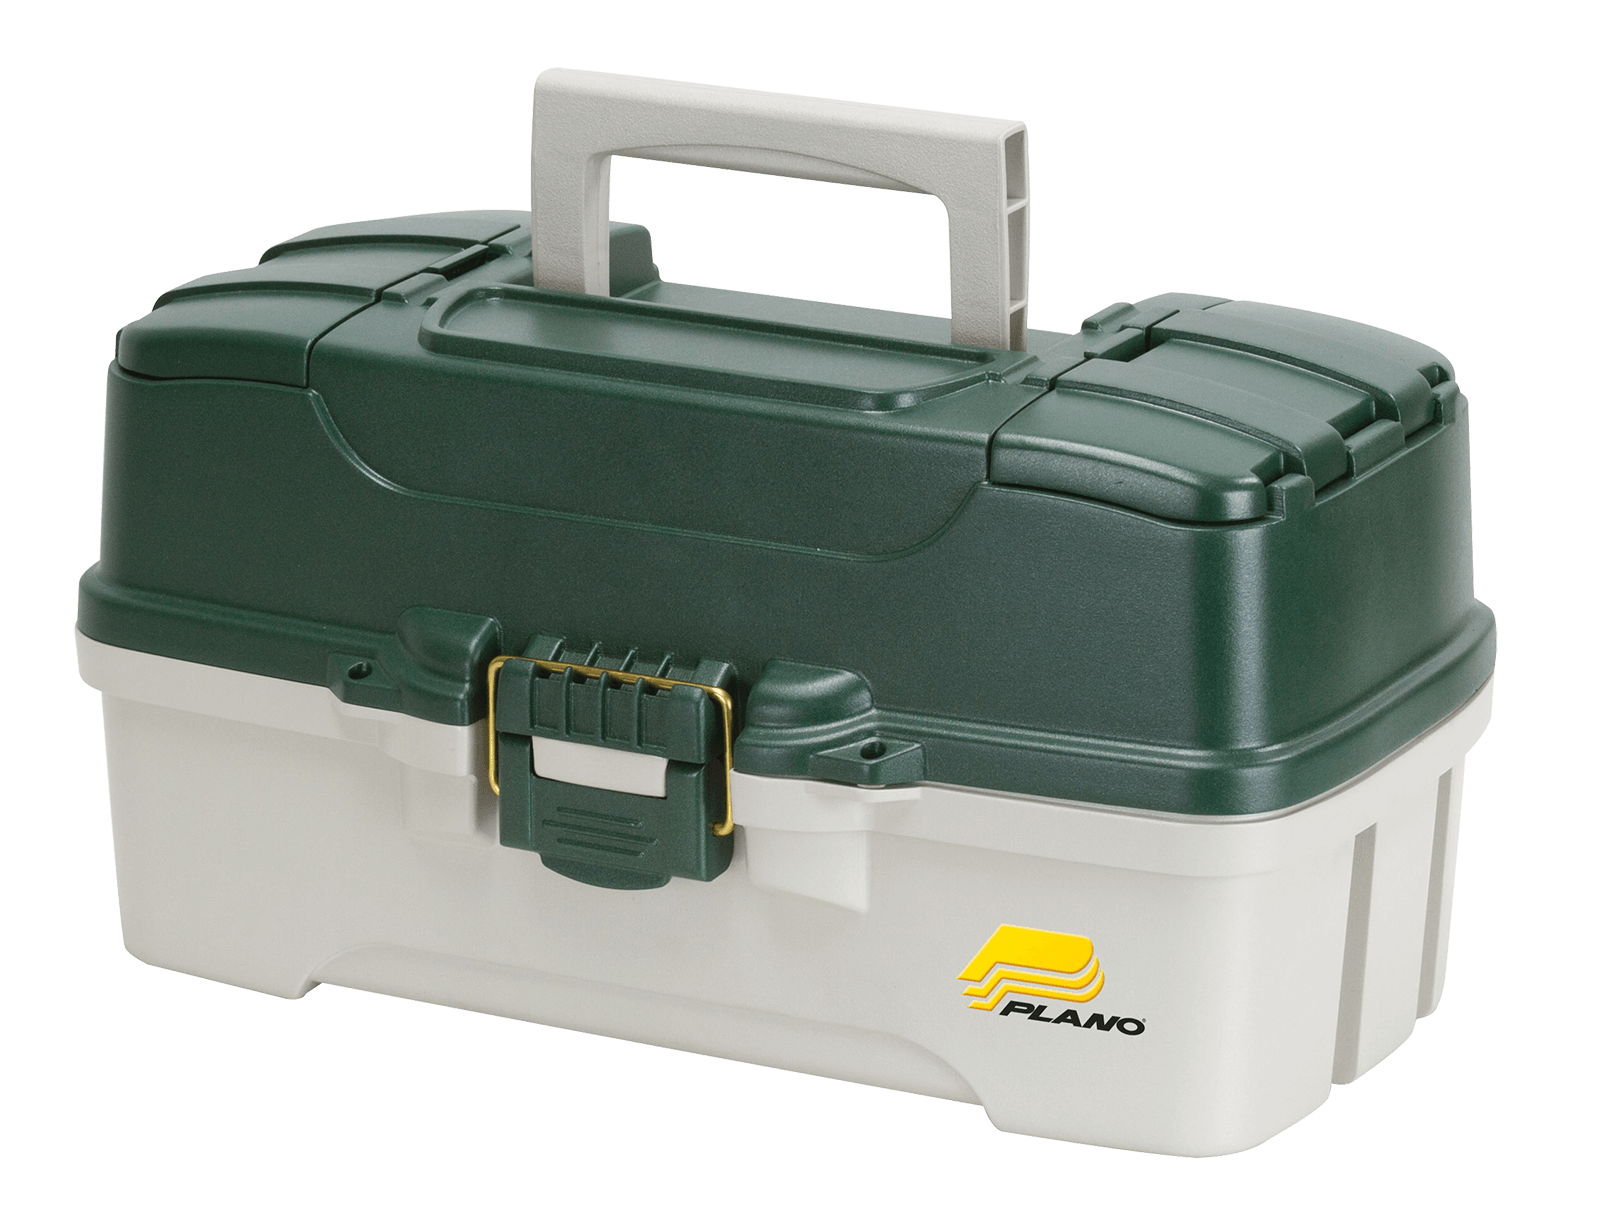 Plano Fishing, 3 Tray Tackle Box, Dual top access, Green Off White by Plano